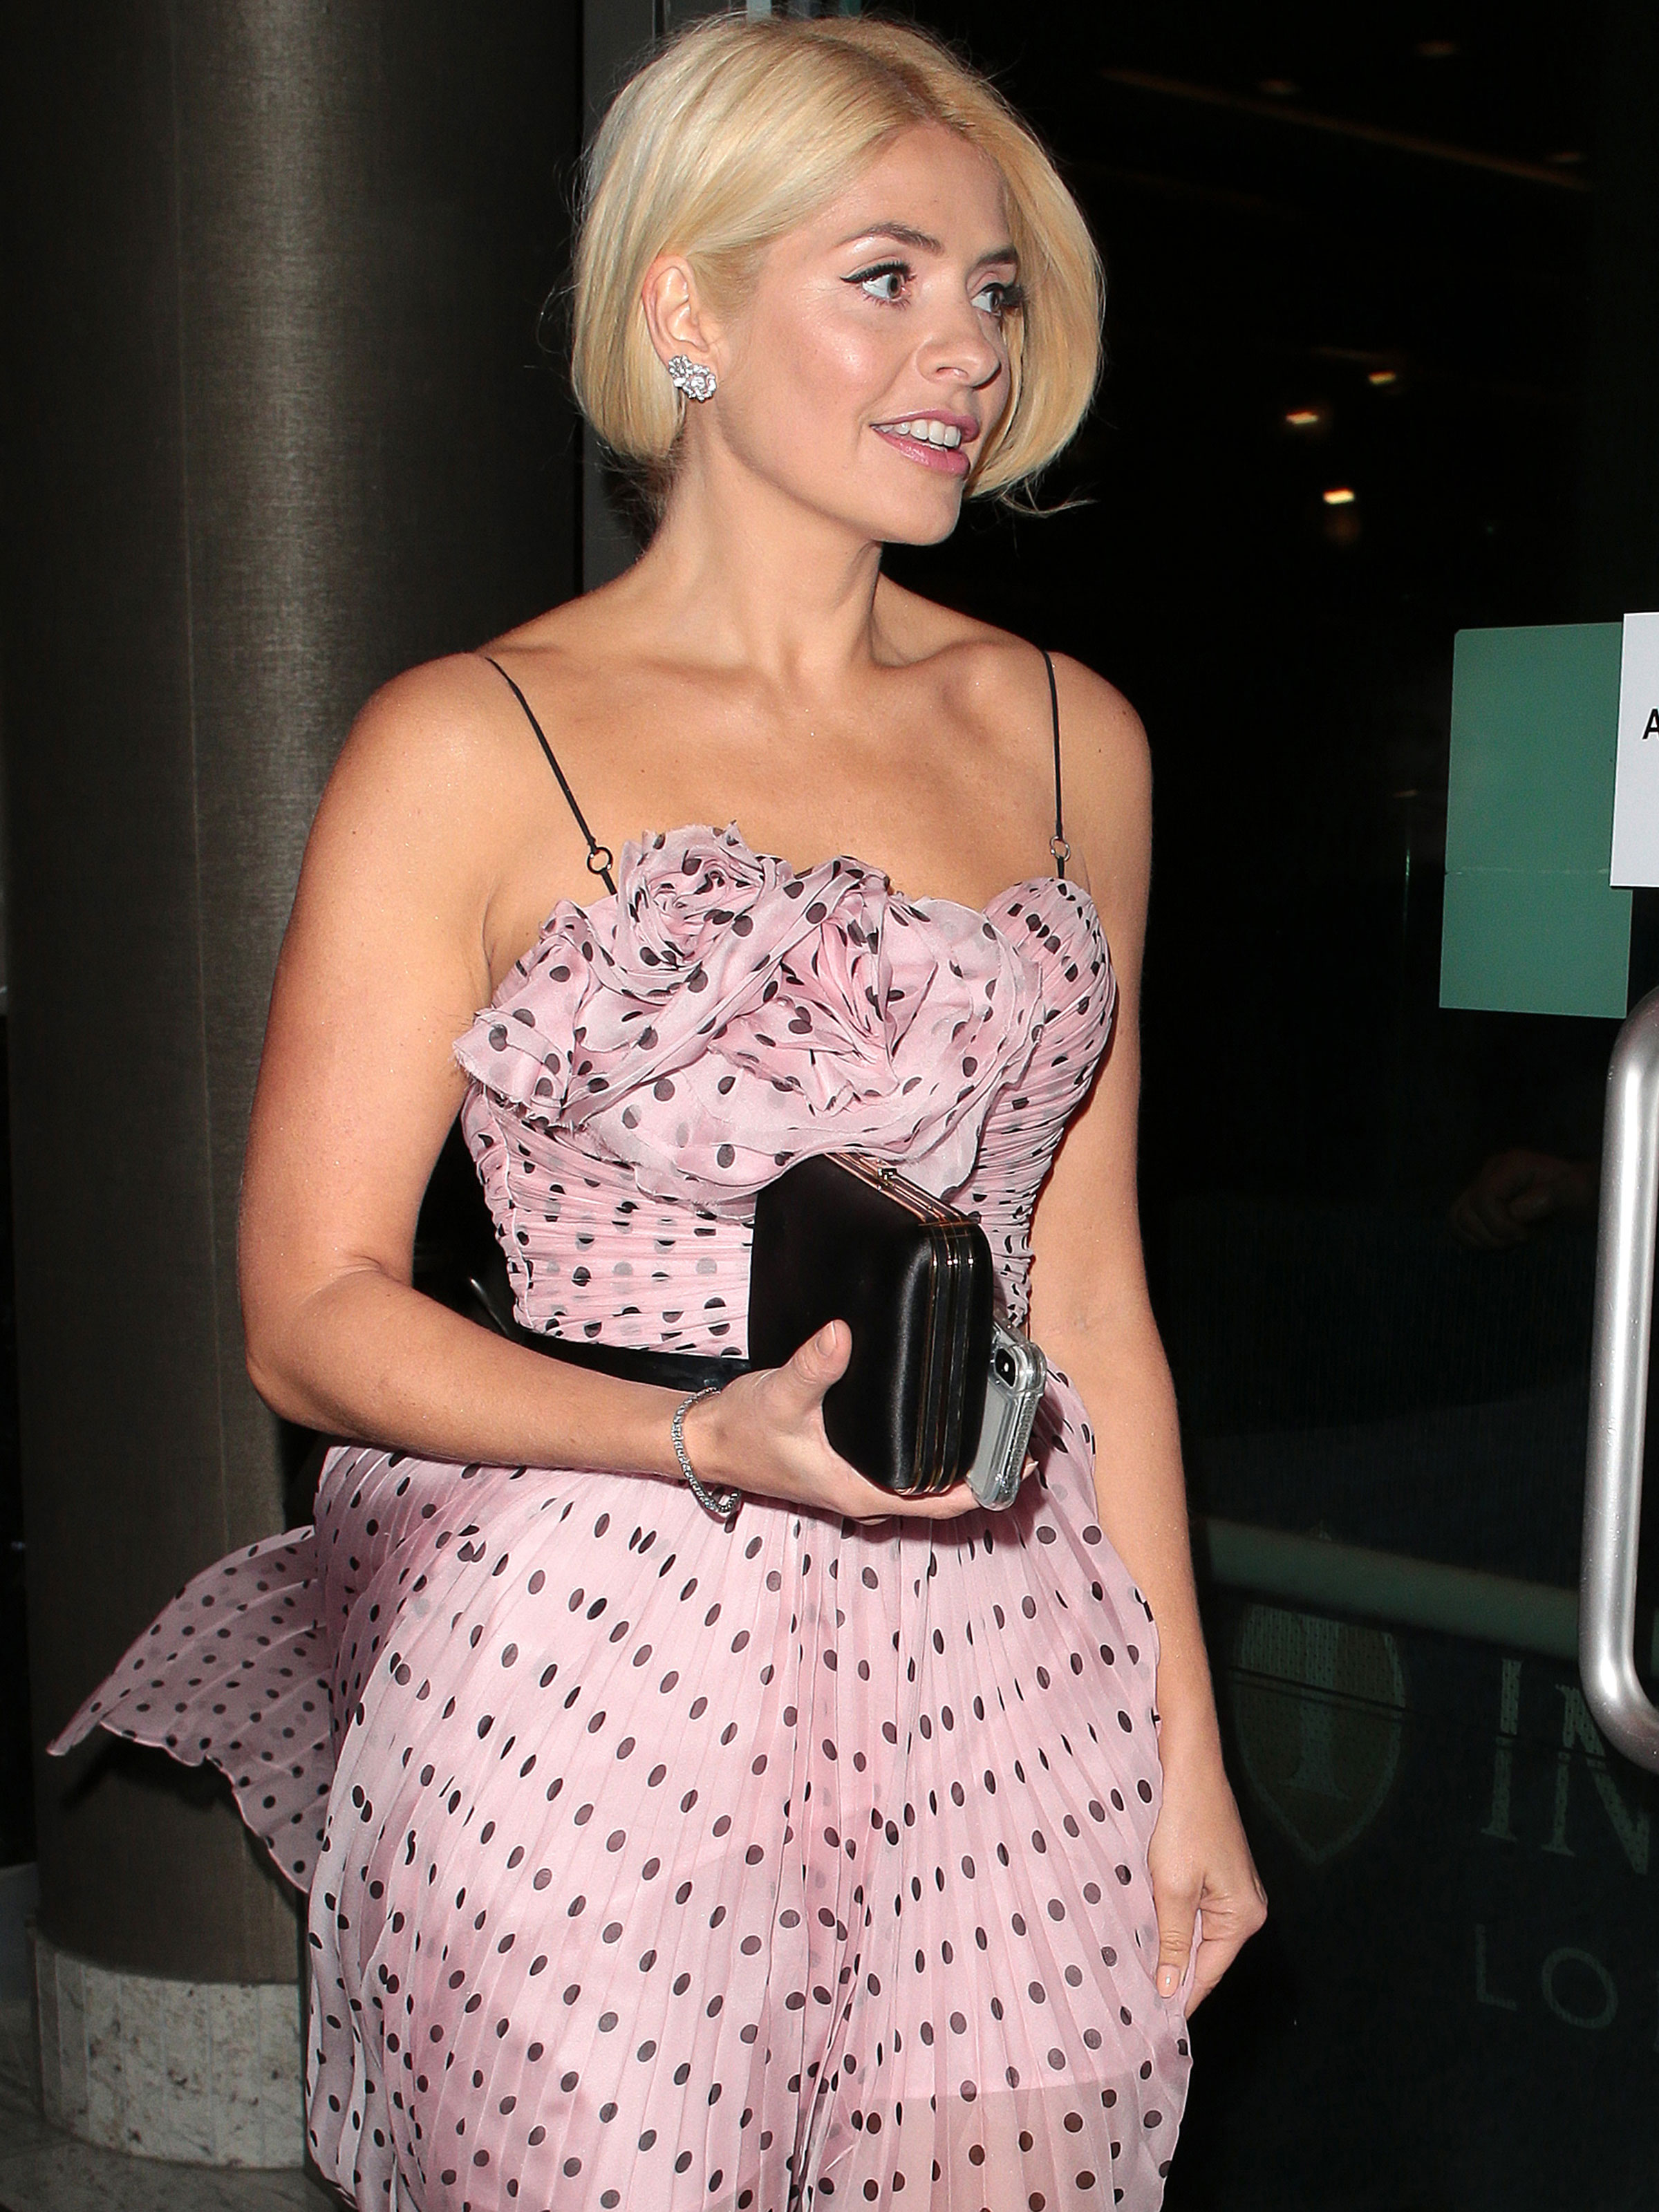 Holly Willoughby Flaunts Tanned Toned Legs In Chic Summer